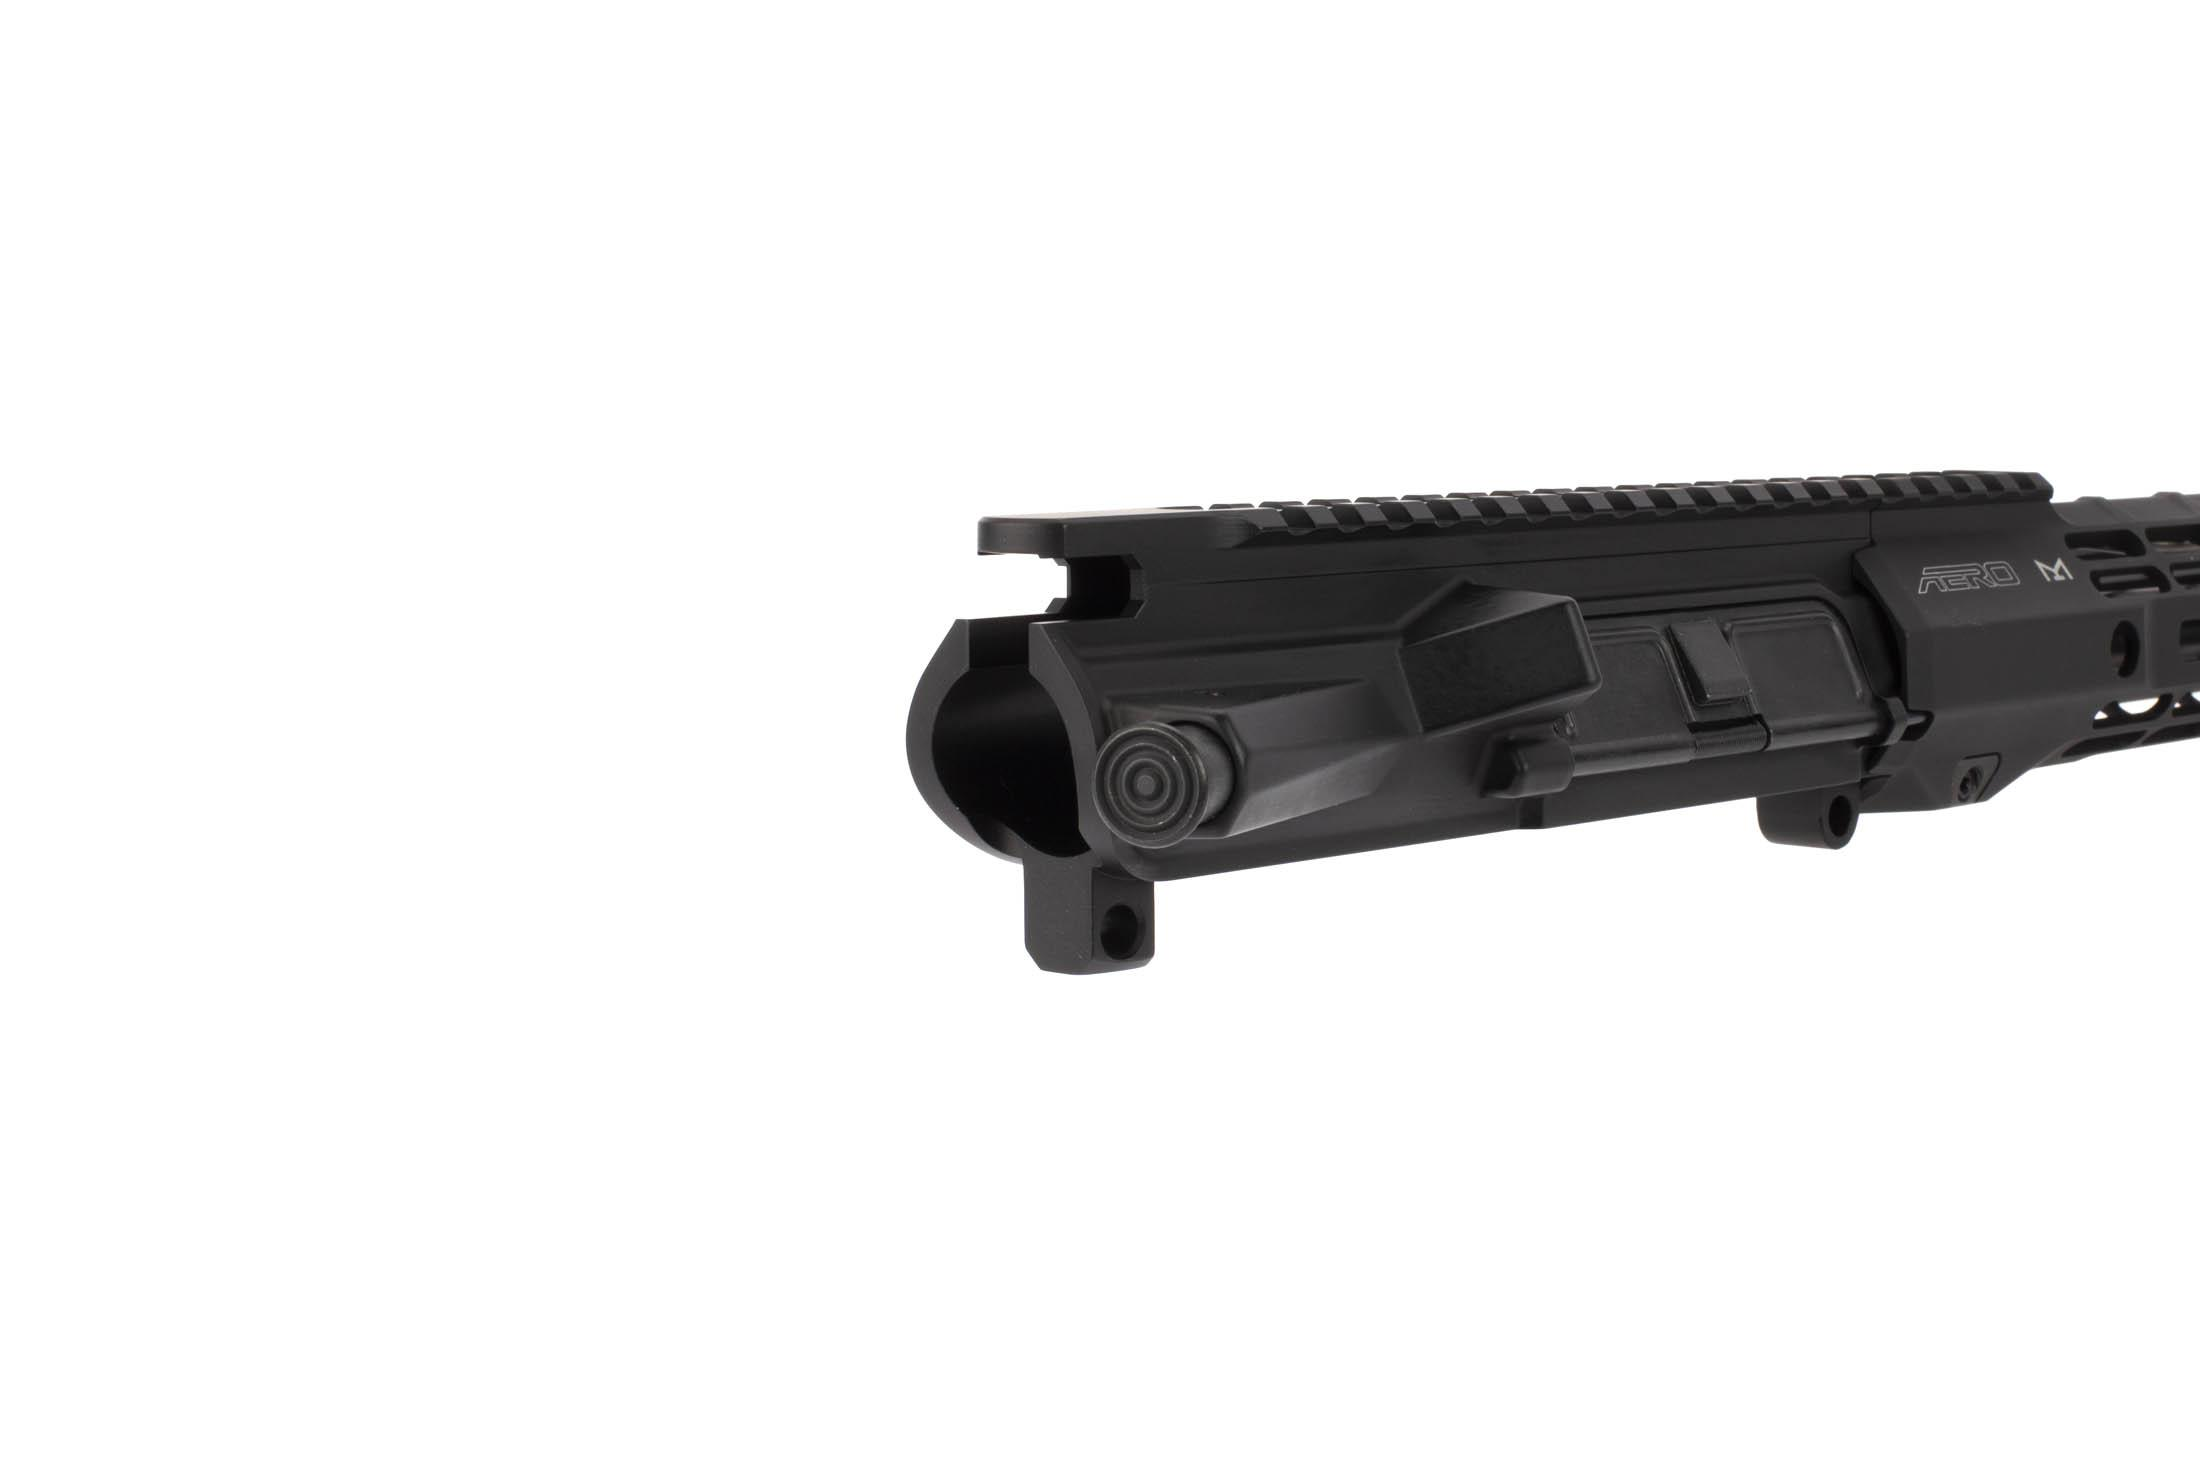 Aero Precision 16in M4E1 barelled AR-15 upper receiver accepts standard bolt carrier groups and charging handles